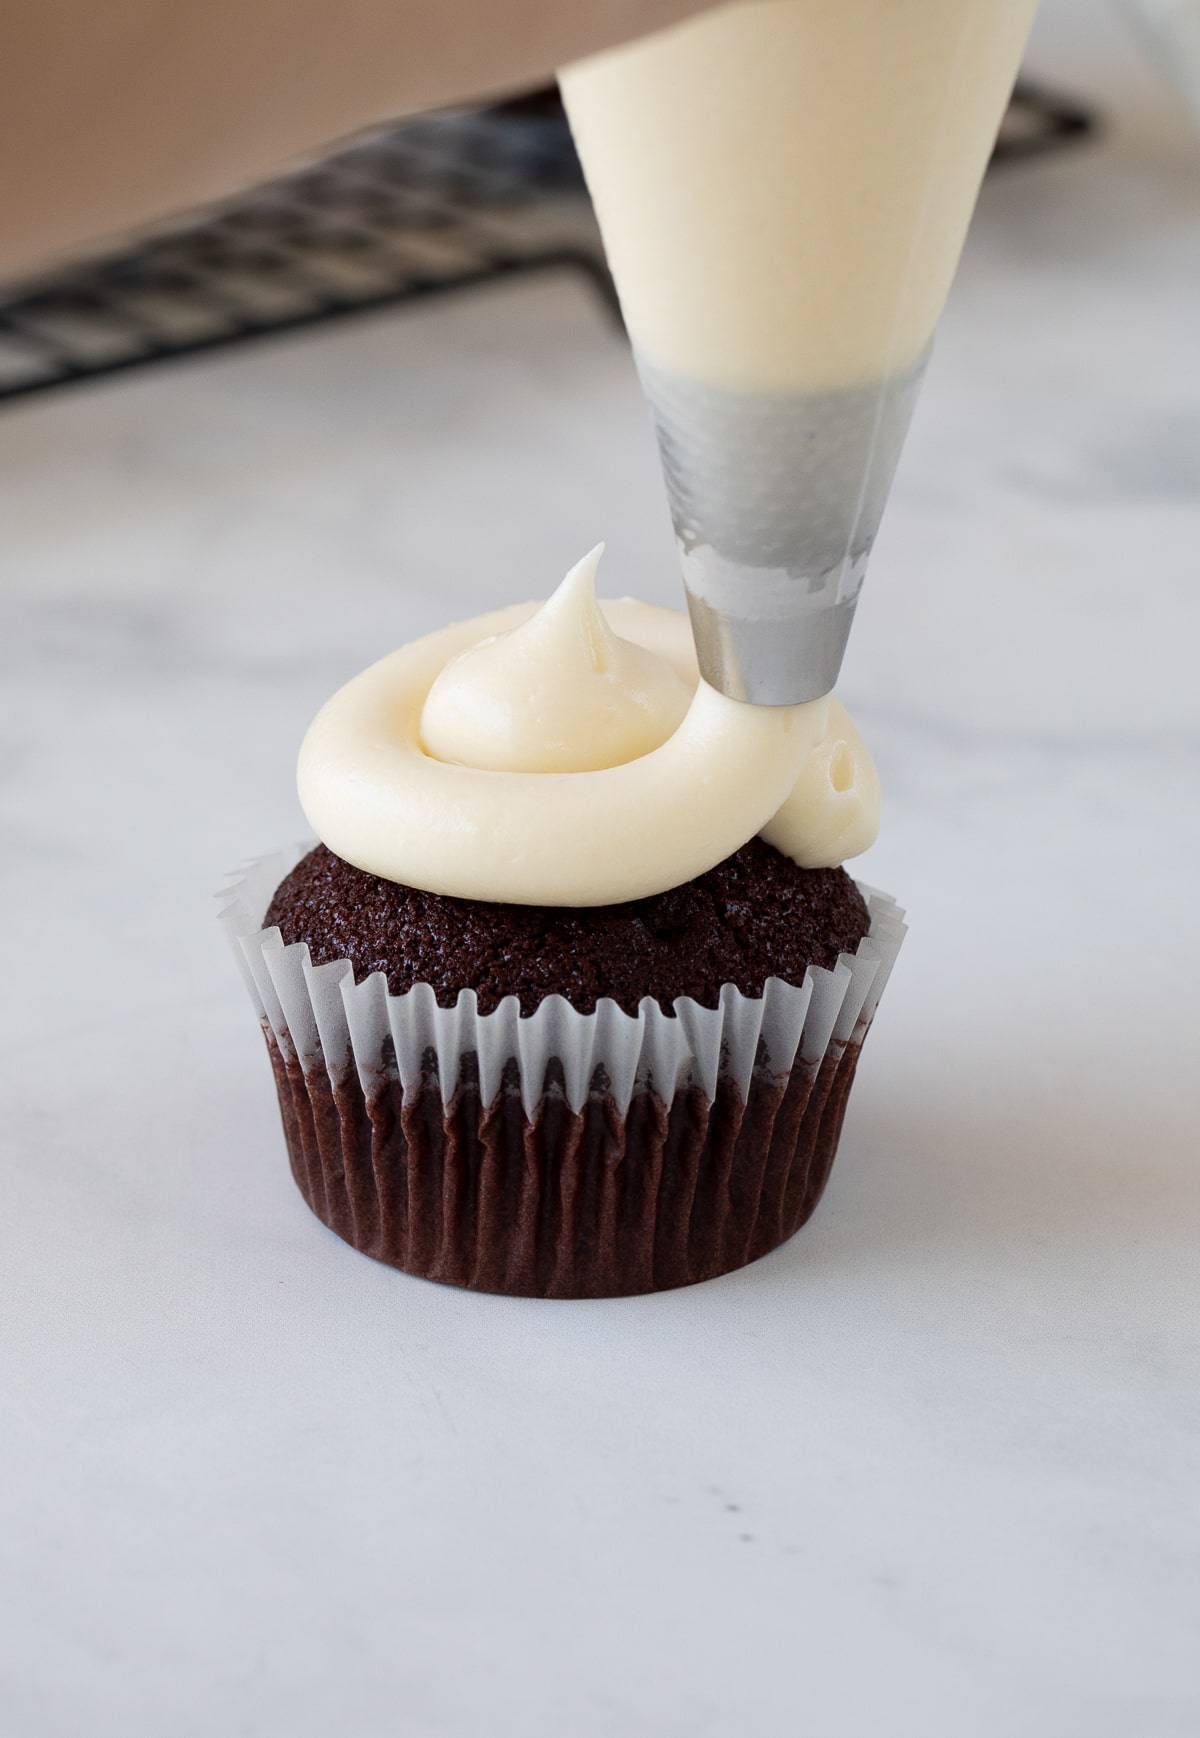 Cream Cheese Frosting being piped on cupcake